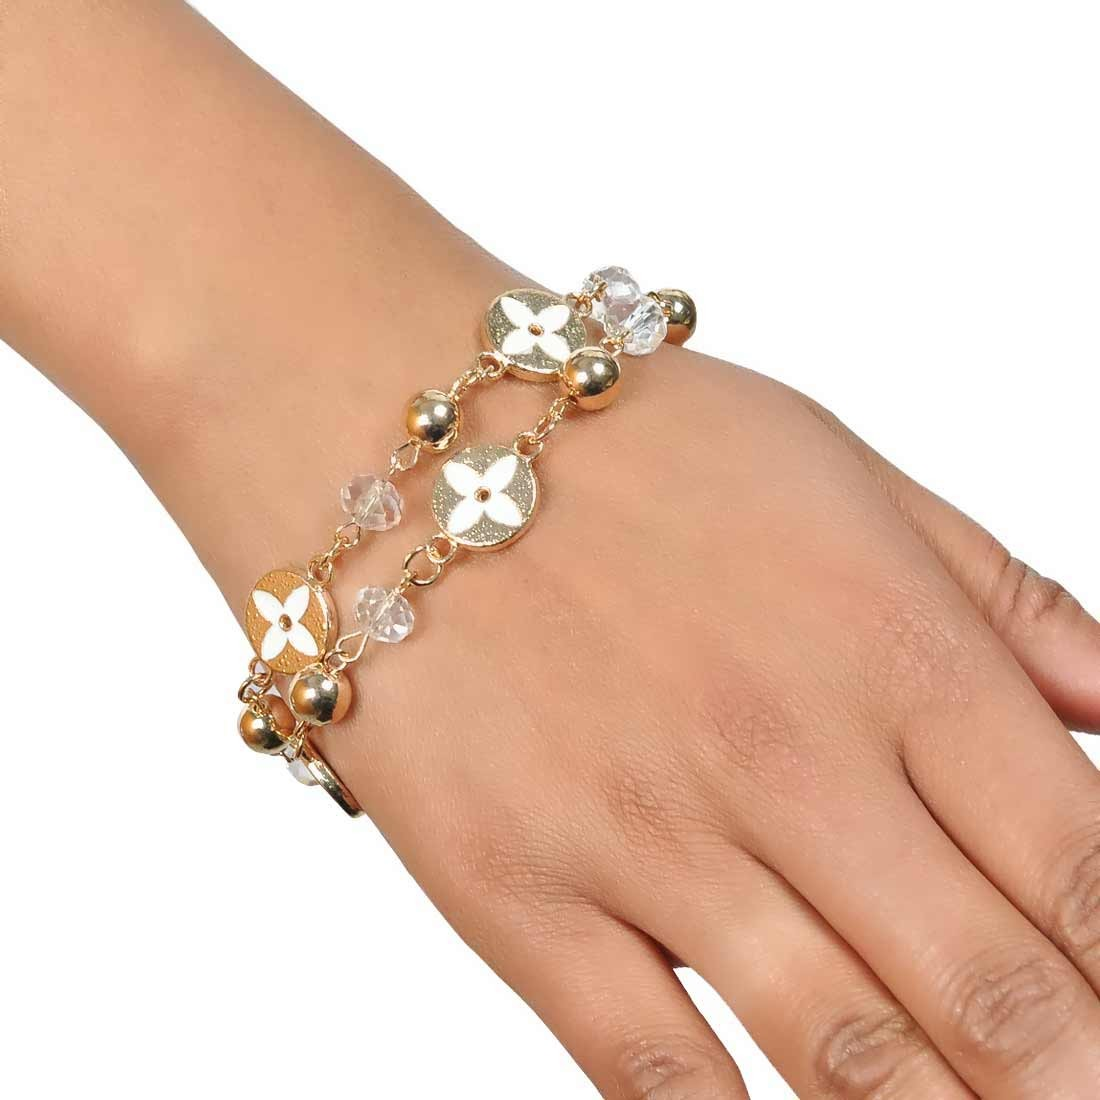 Sober White Bronze in-Trend Adjustable Reunion Bracelet Alloy Maayra MY7723